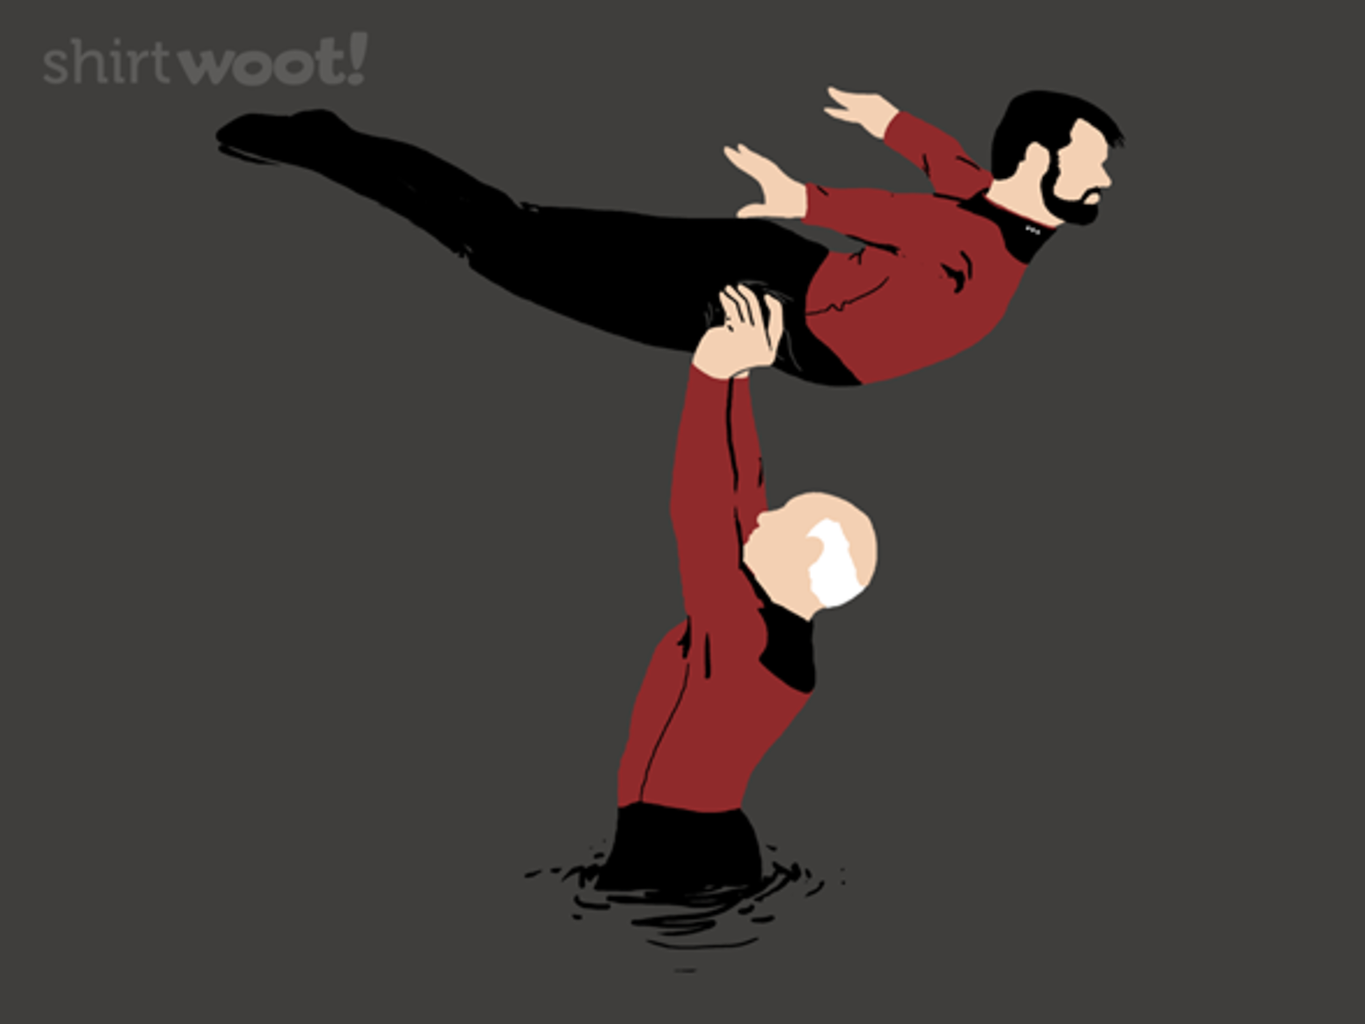 Woot!: Hoisted by his Own Picard